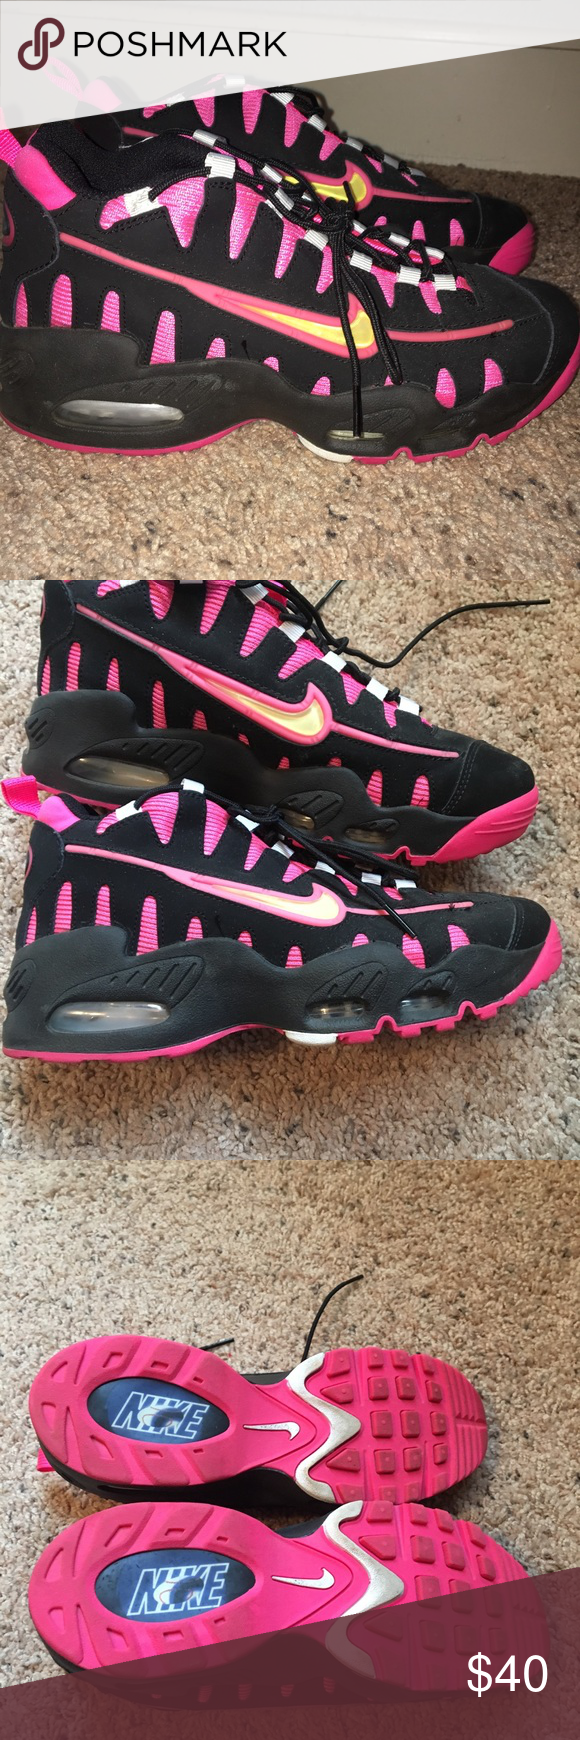 c6f6d1564760 Nike Ken Griffey Jr Shoes Nike Ken Griffey Jr Shoes black and pink. Only  worn once. Boys size 7 so women s 8.5 Nike Shoes Athletic Shoes